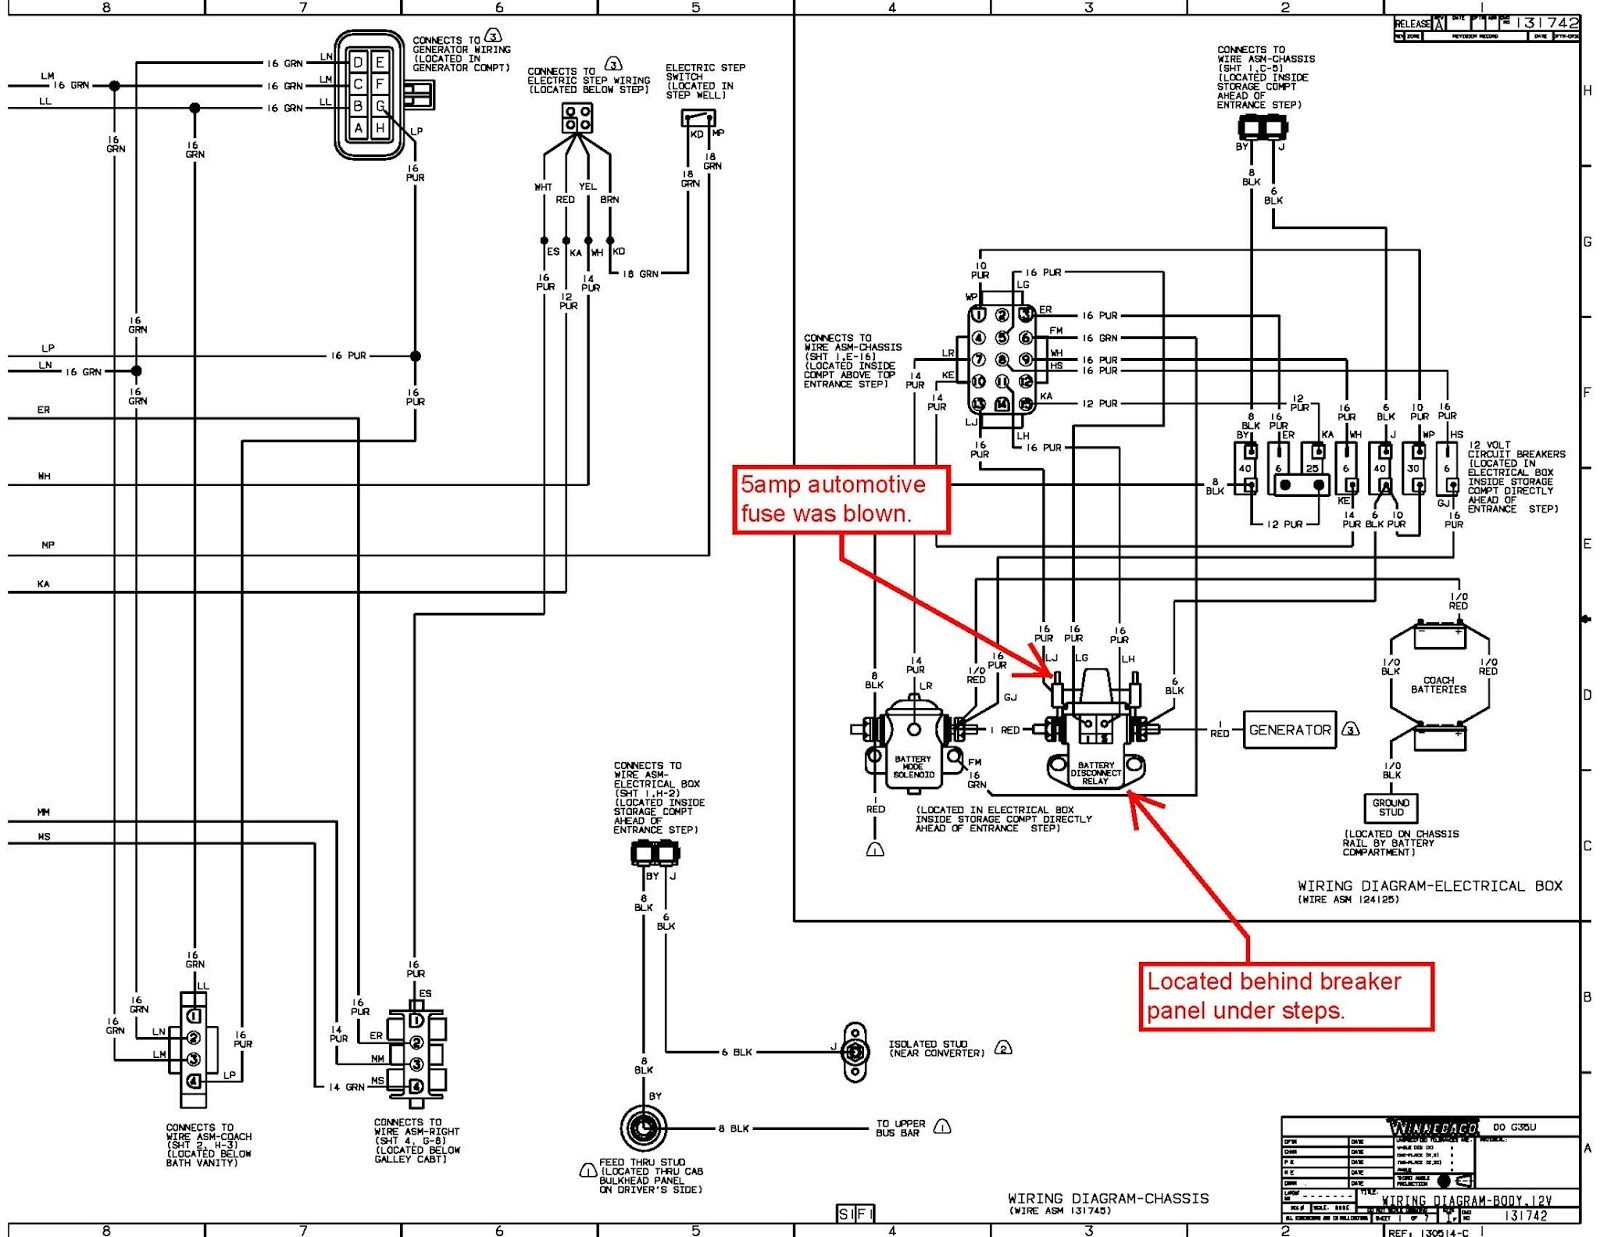 Winnebago Chalet Wiring Diagram